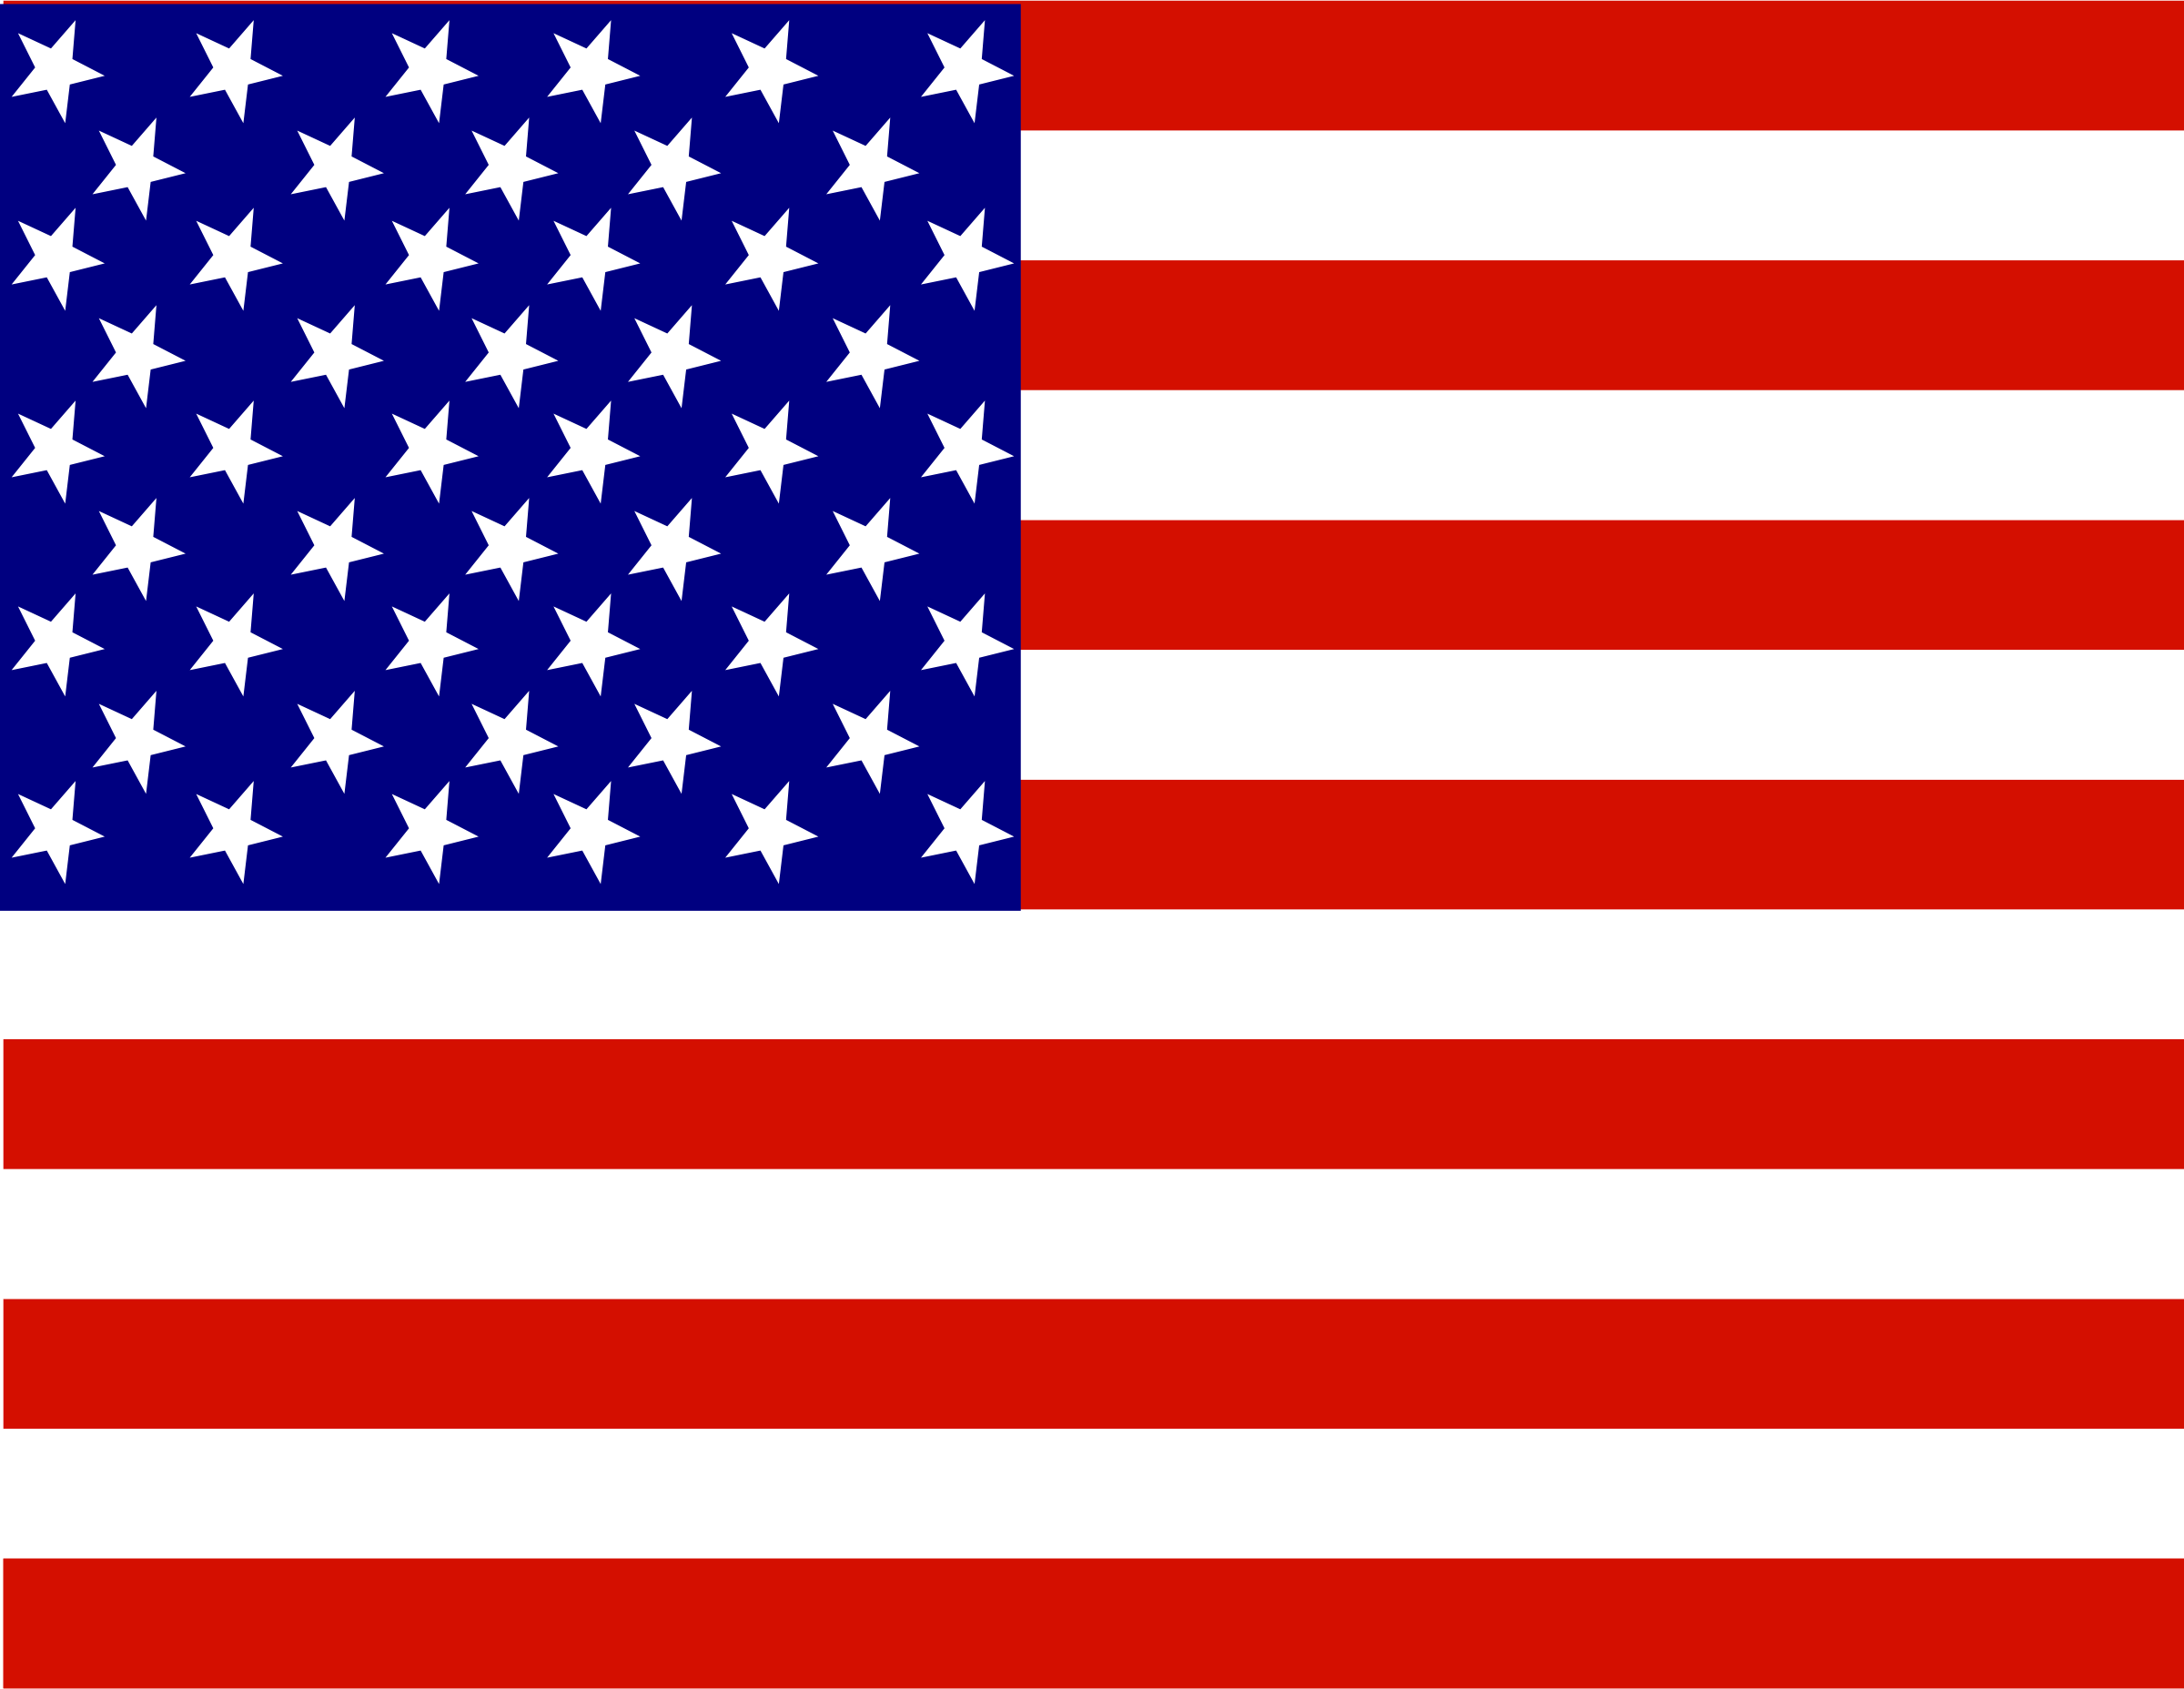 U.S.A. Flag by MTDEWBUNNY